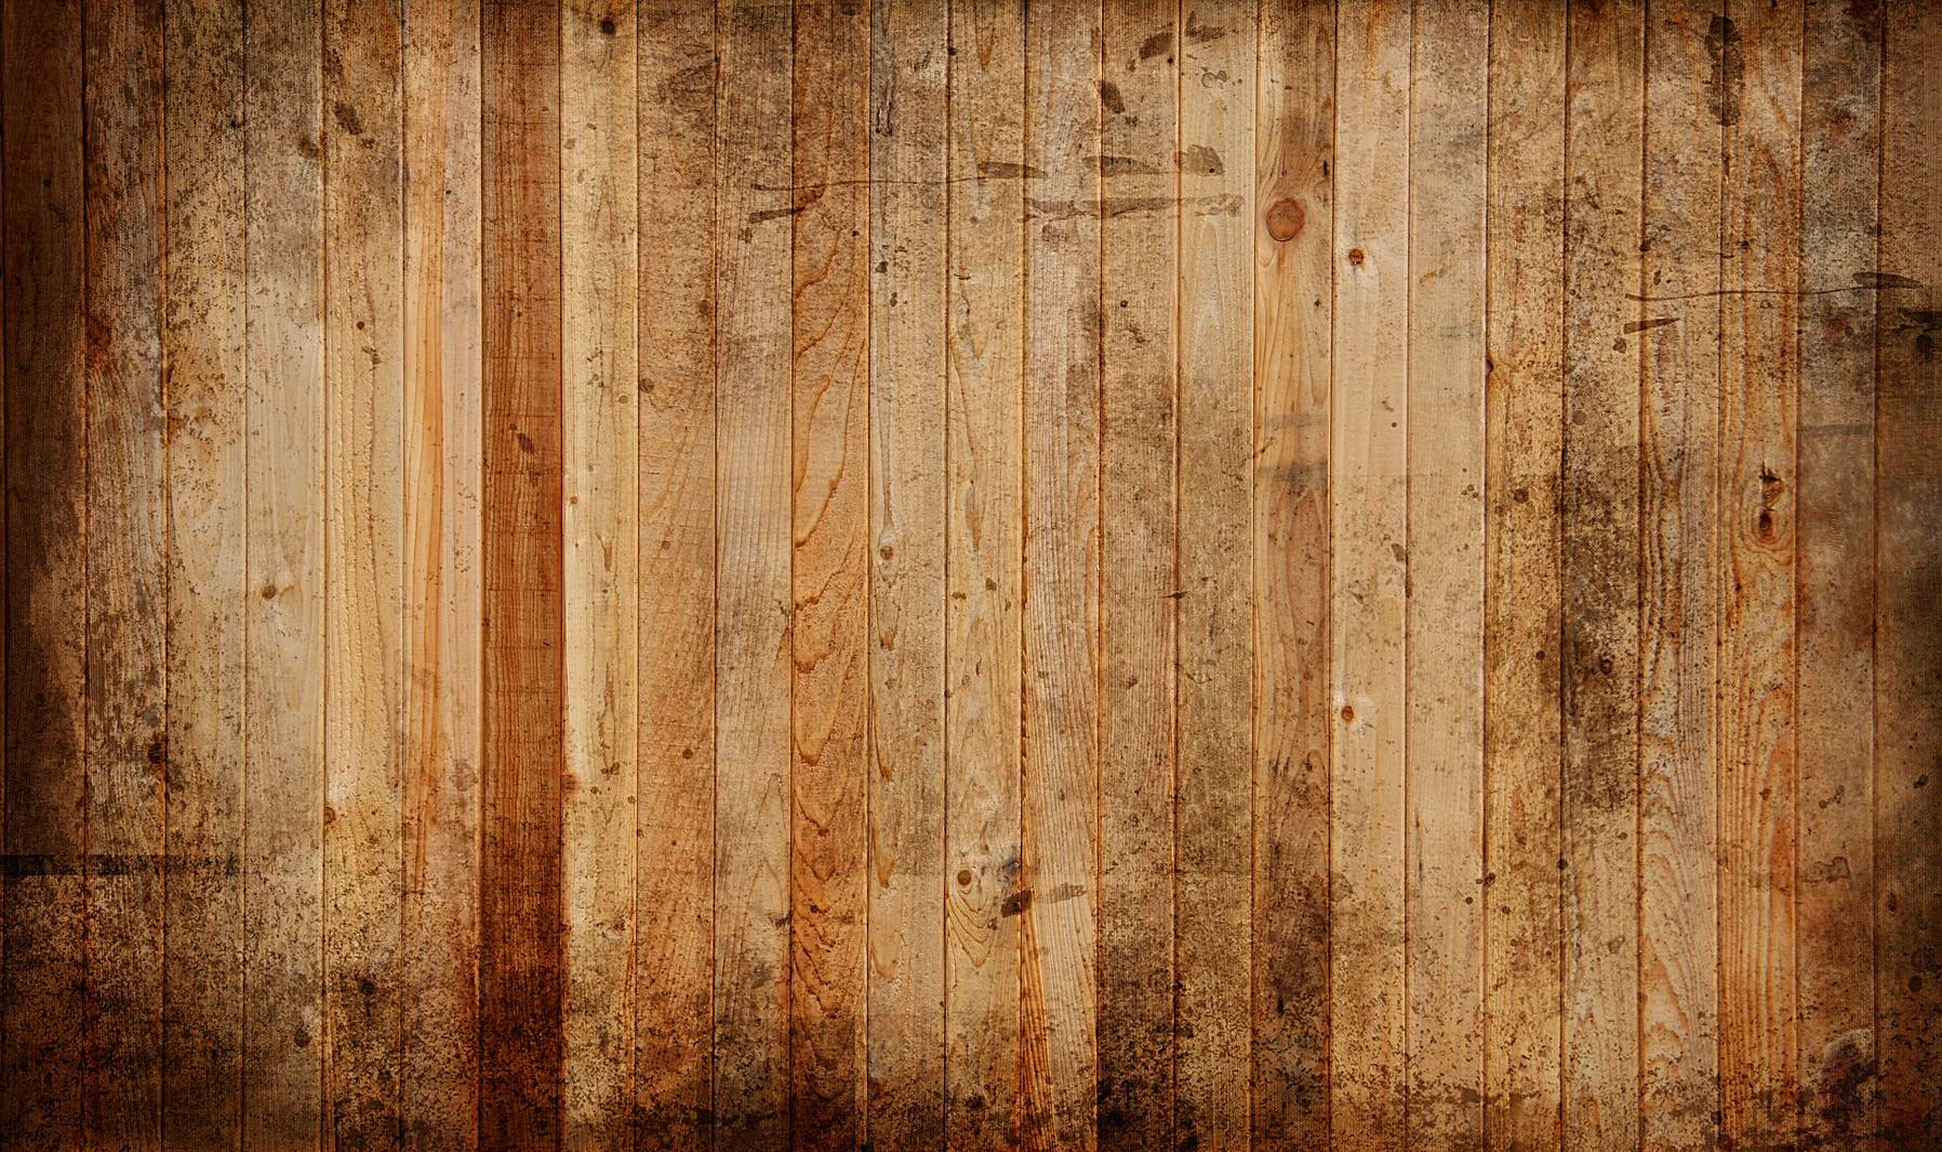 Wooden Desktop 30 43 Rustic Backgrounds ① Download Free Beautiful Hd